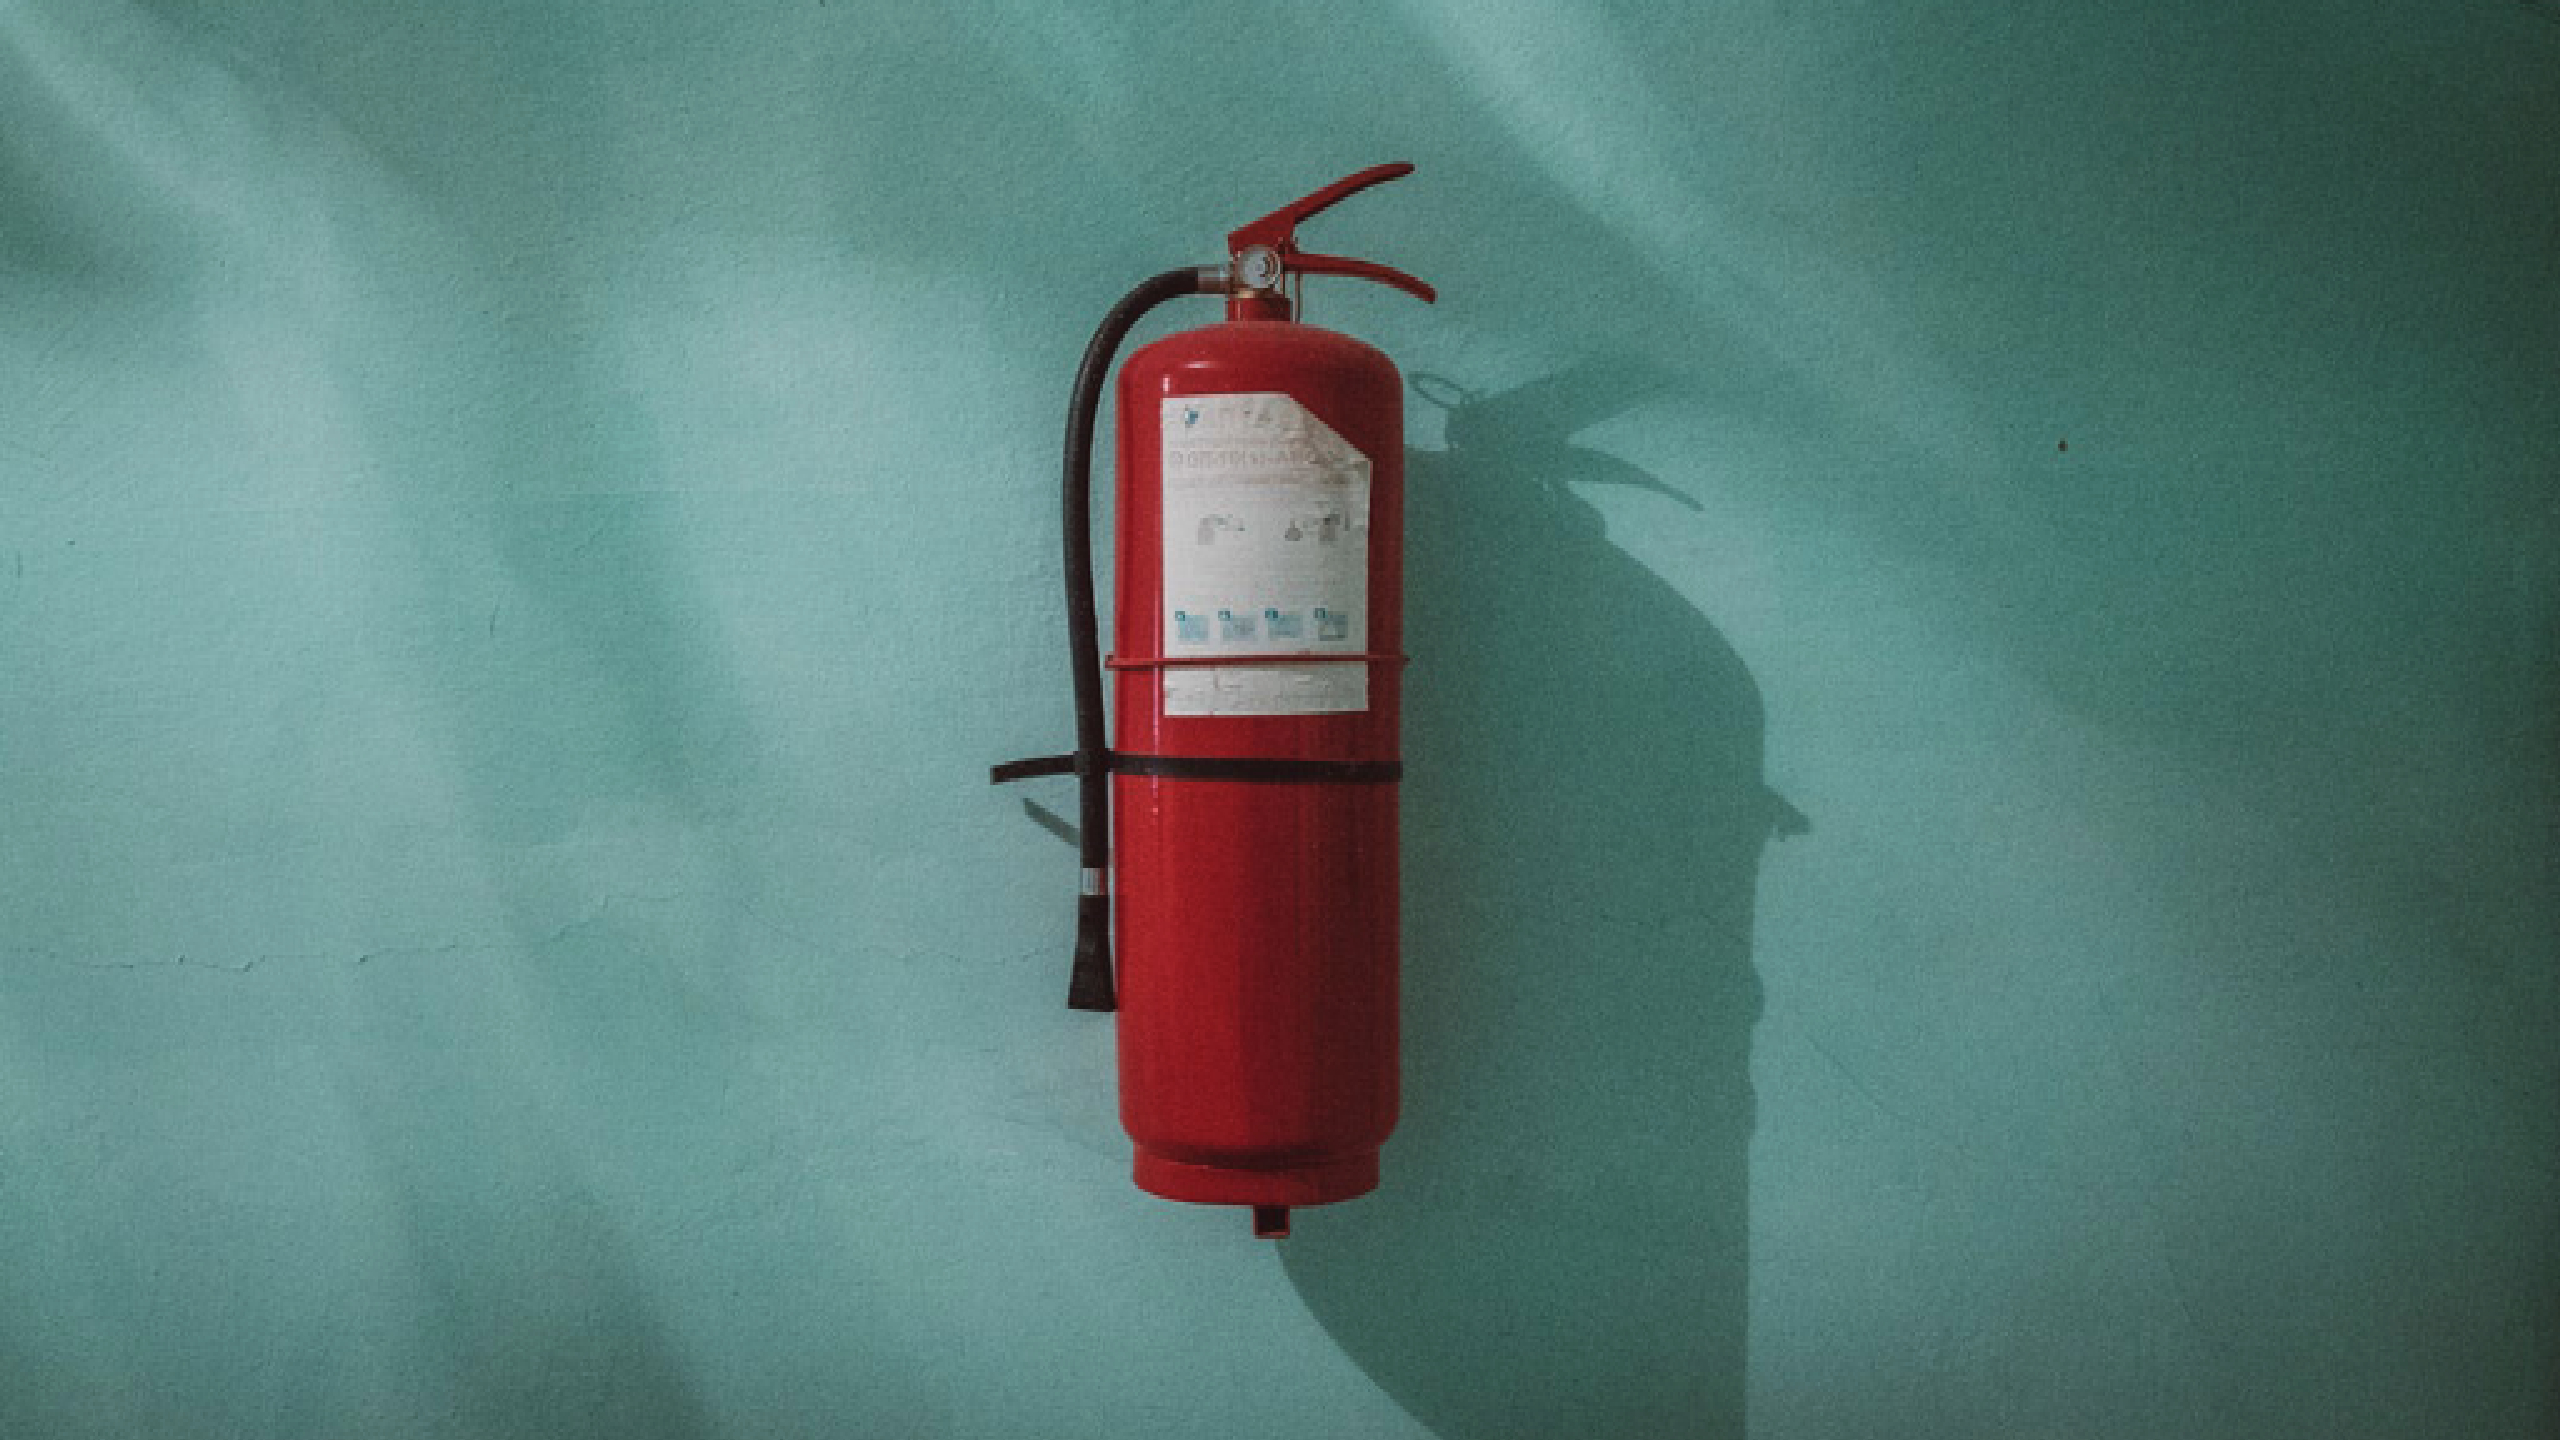 The Importance of Fire Safety Plans